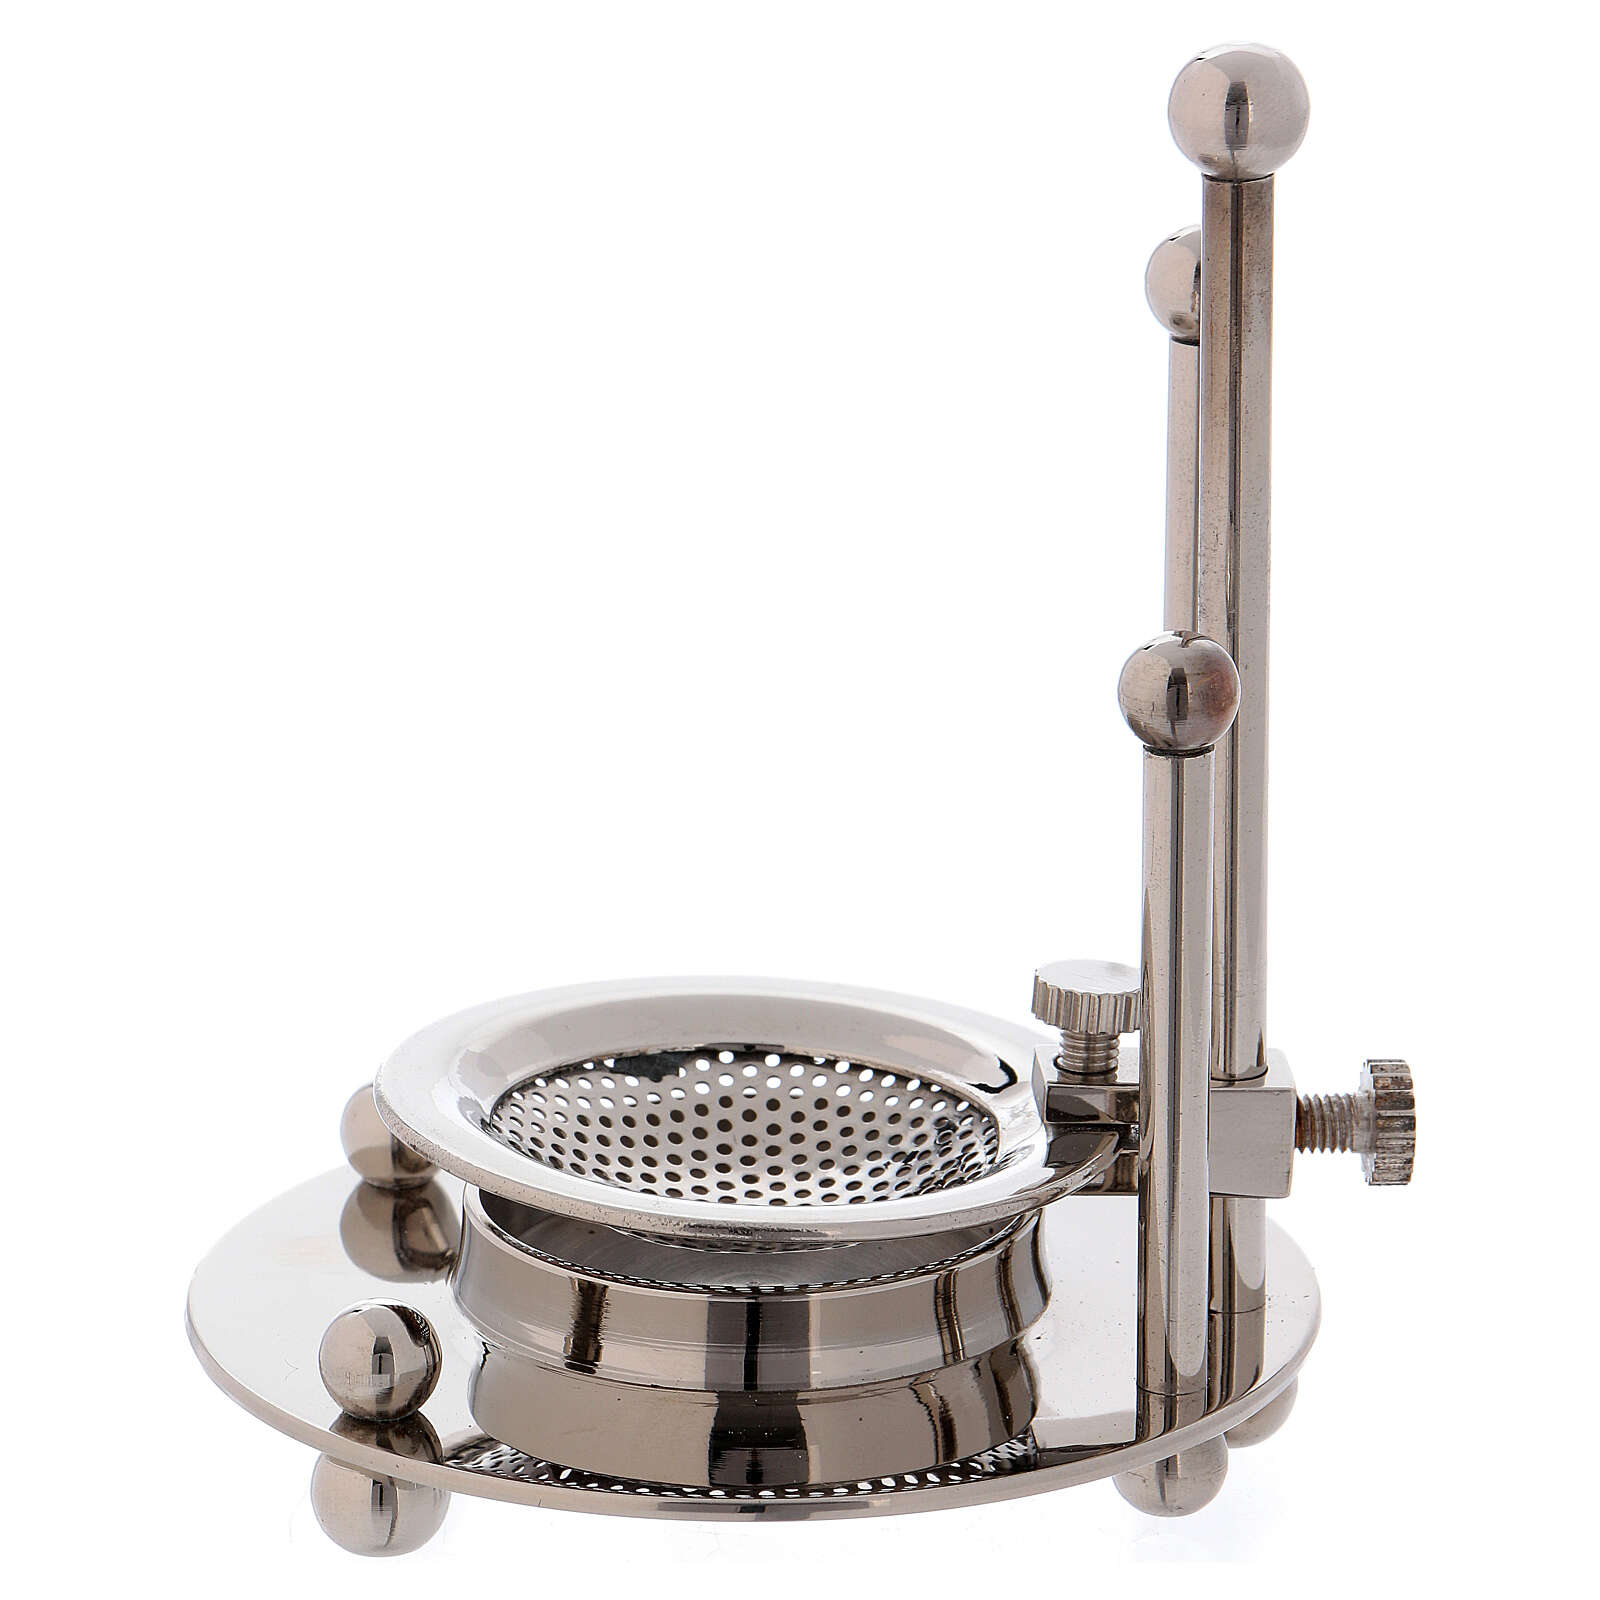 Incense burner in nickel-plated brass removable net 3